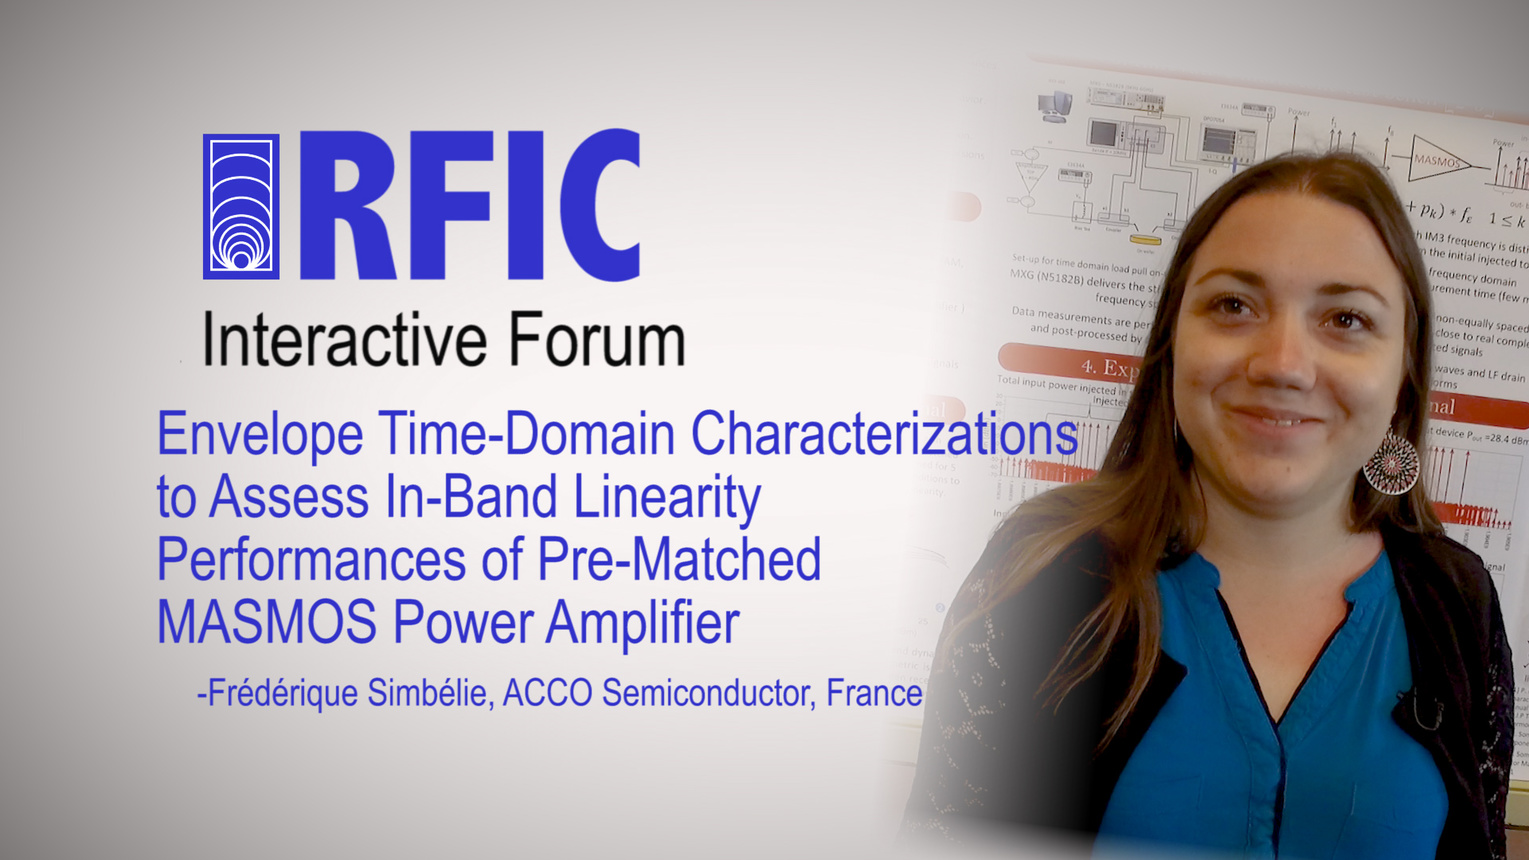 Envelope Time-Domain Characterizations to Assess In-Band Linearity Performances of Pre-Matched MASMOS Power Amplifier: RFIC Interactive Forum 2017